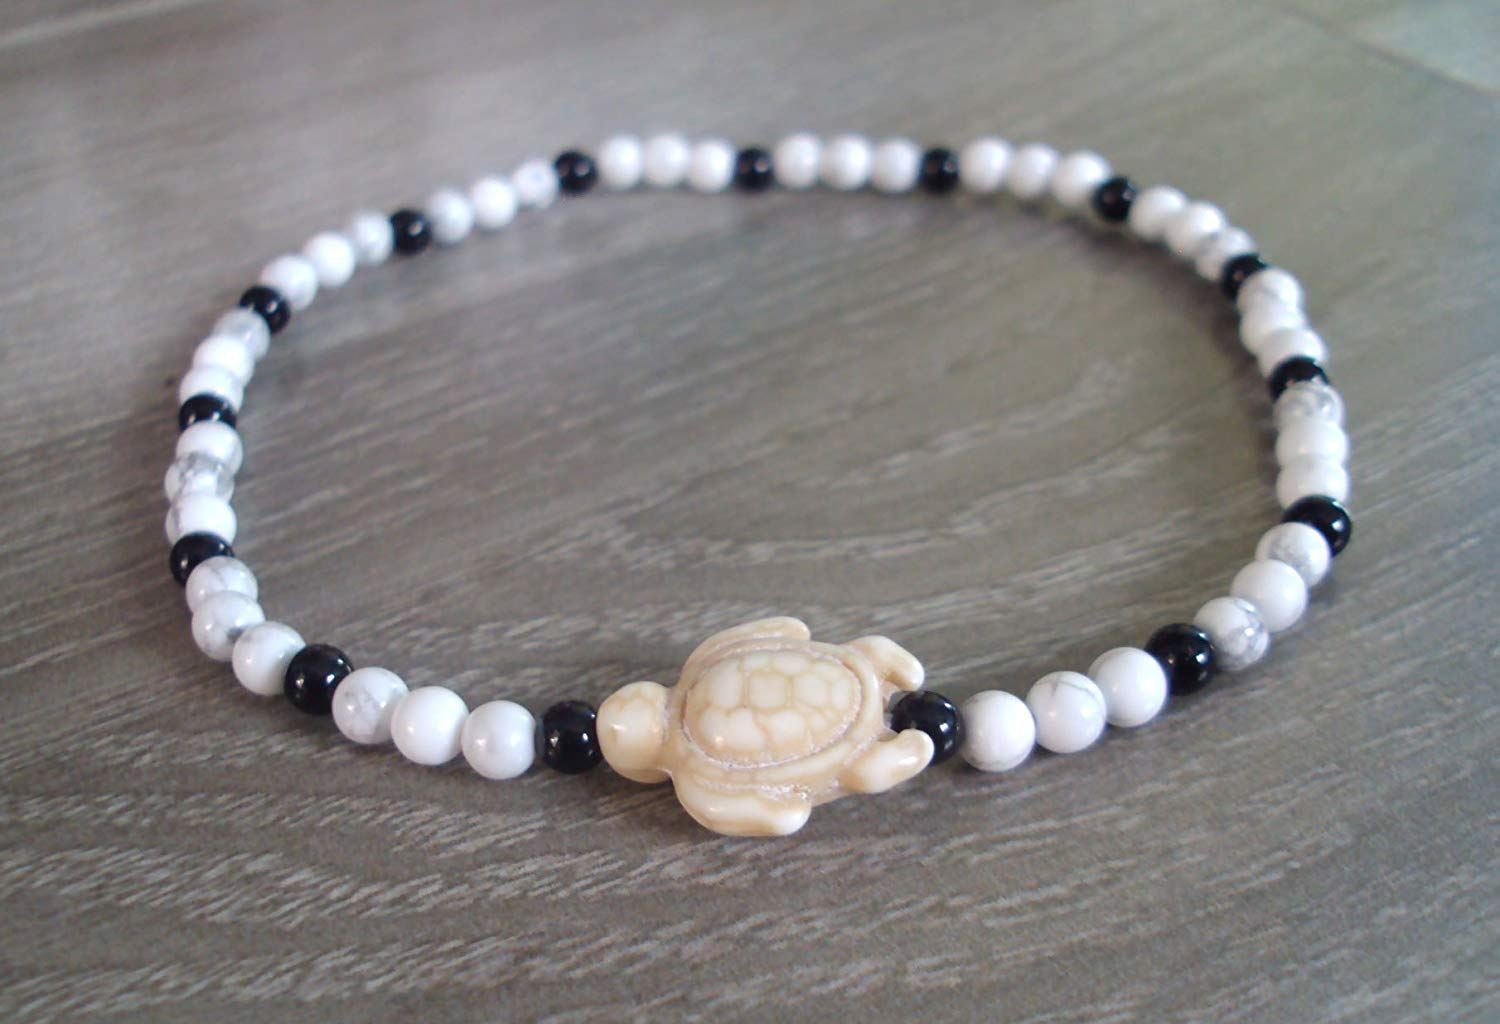 Turtle howlite stone anklets for men and women,onyx anklets,black-white anklets,beaded anklets,gift anklets,fashion anklets